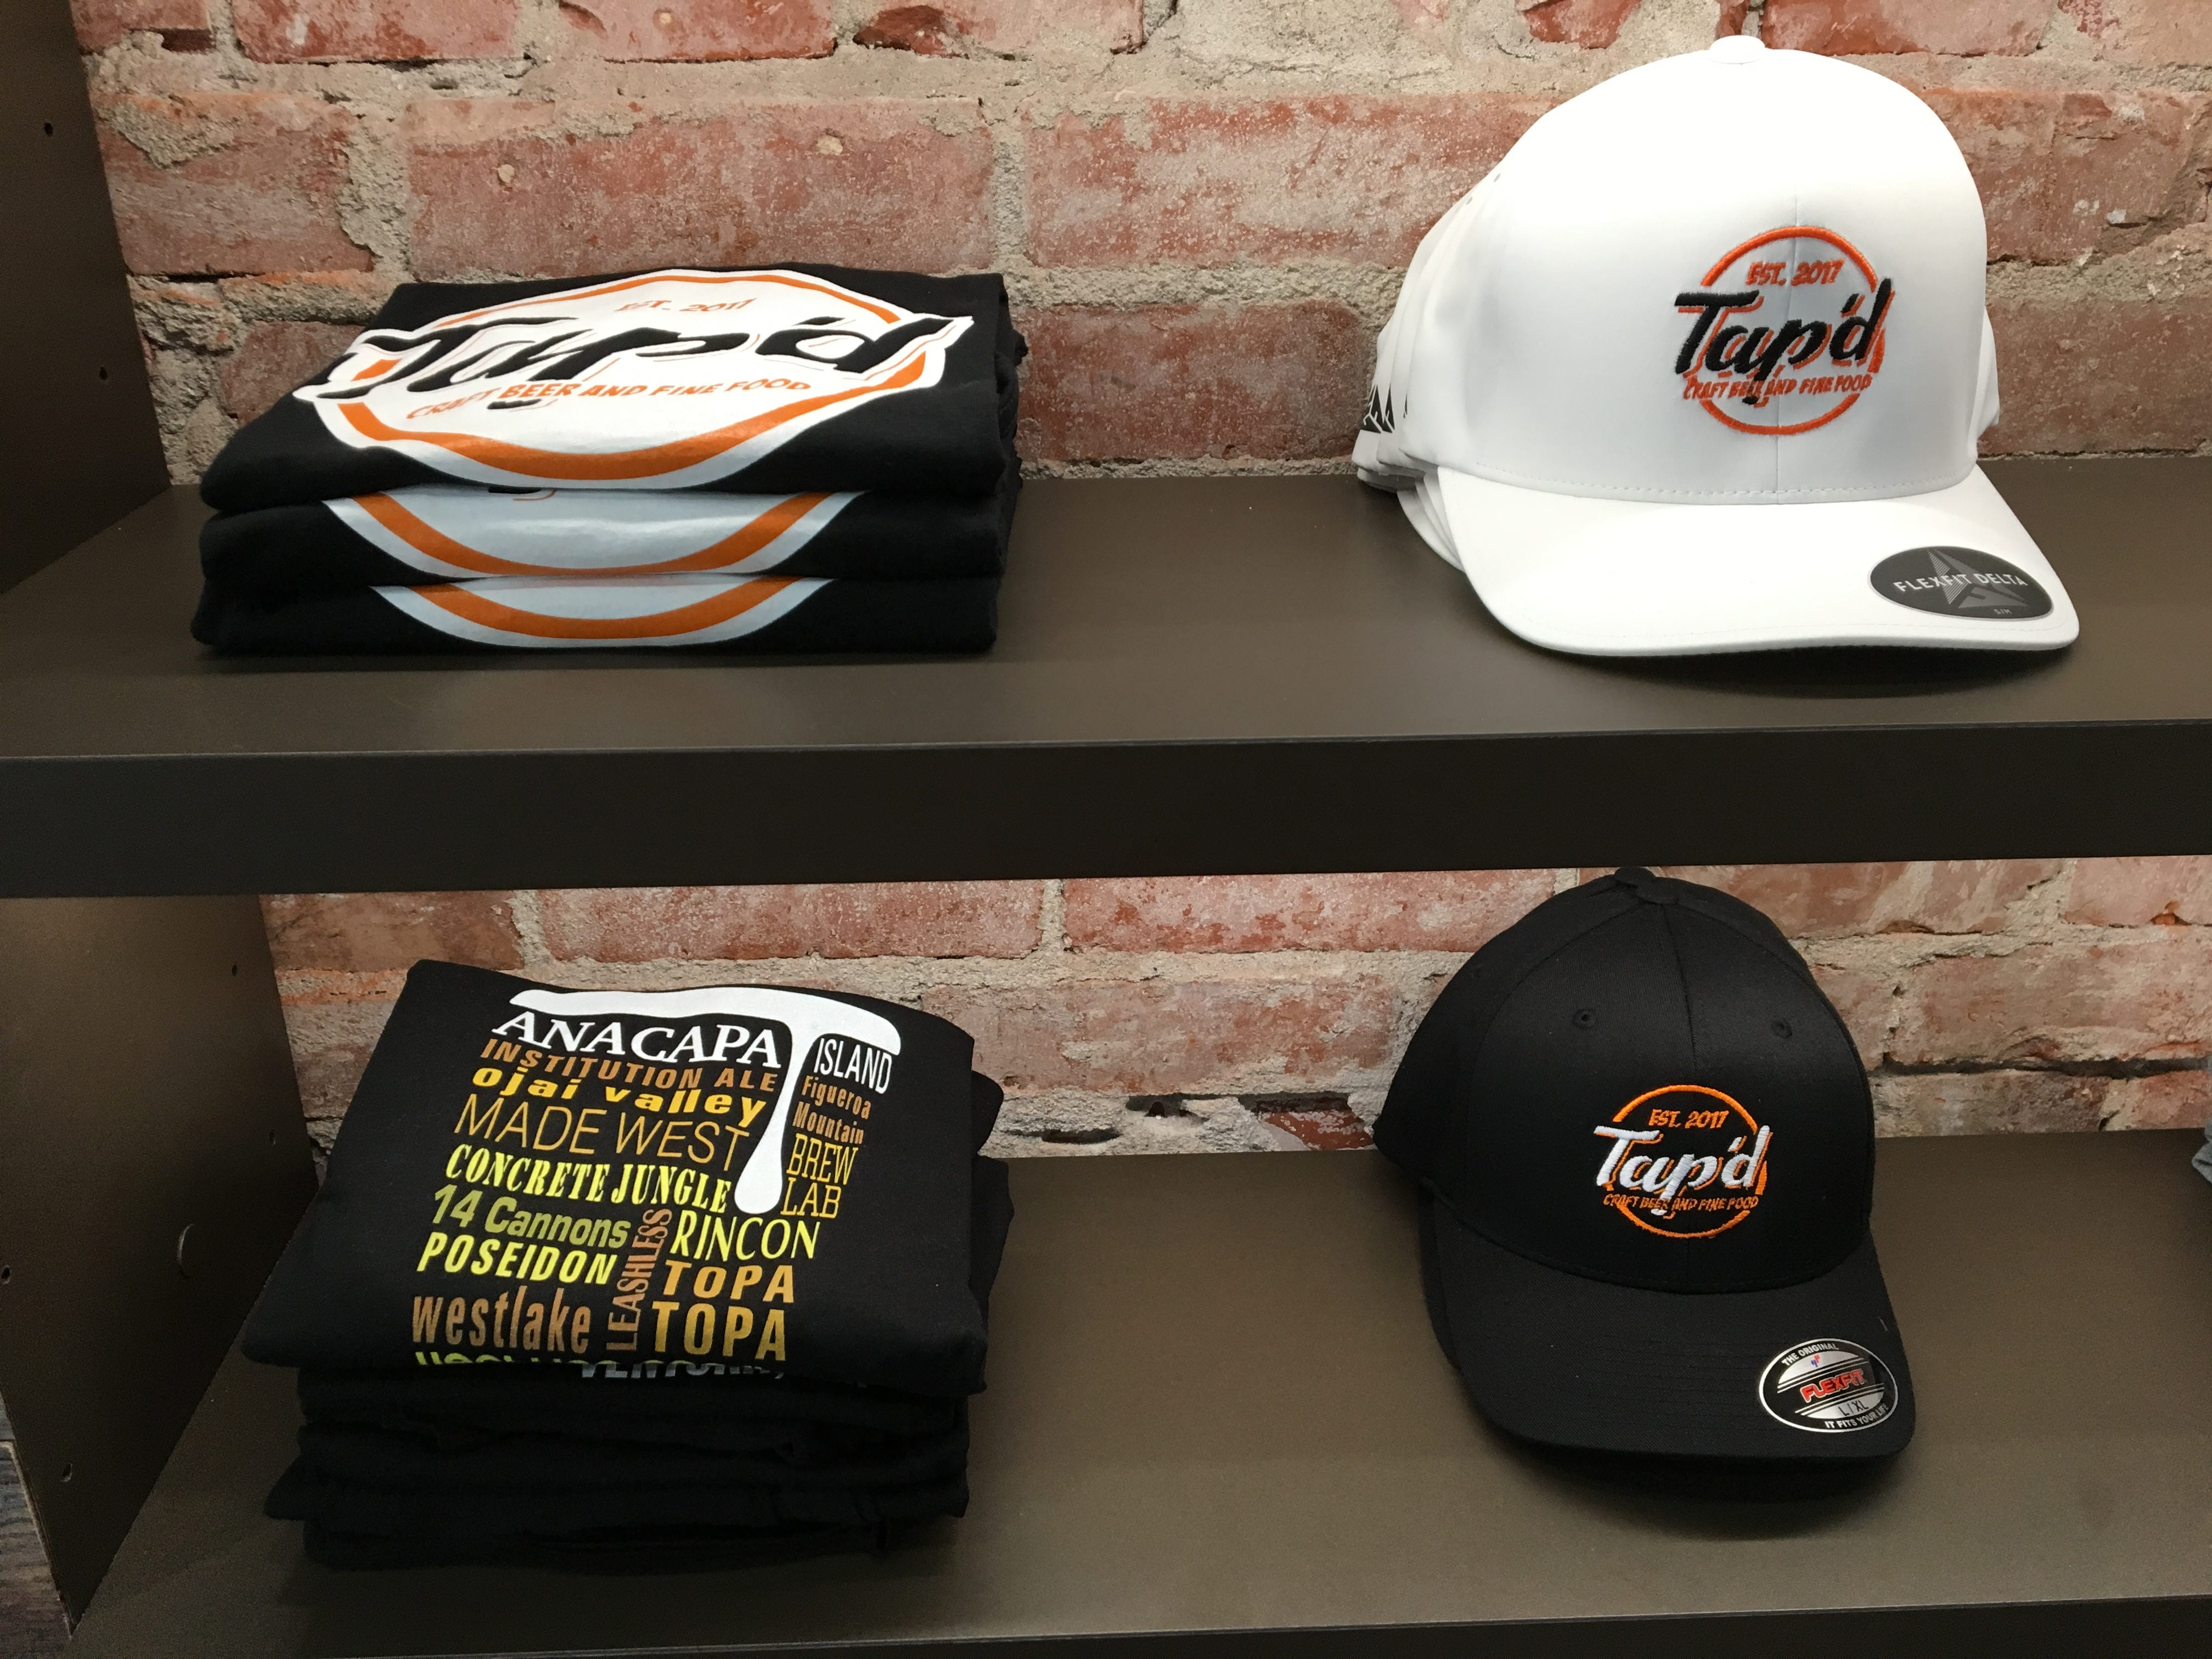 Logo hats and T-shirts are seen on the shelves at Tap'd Ventura.